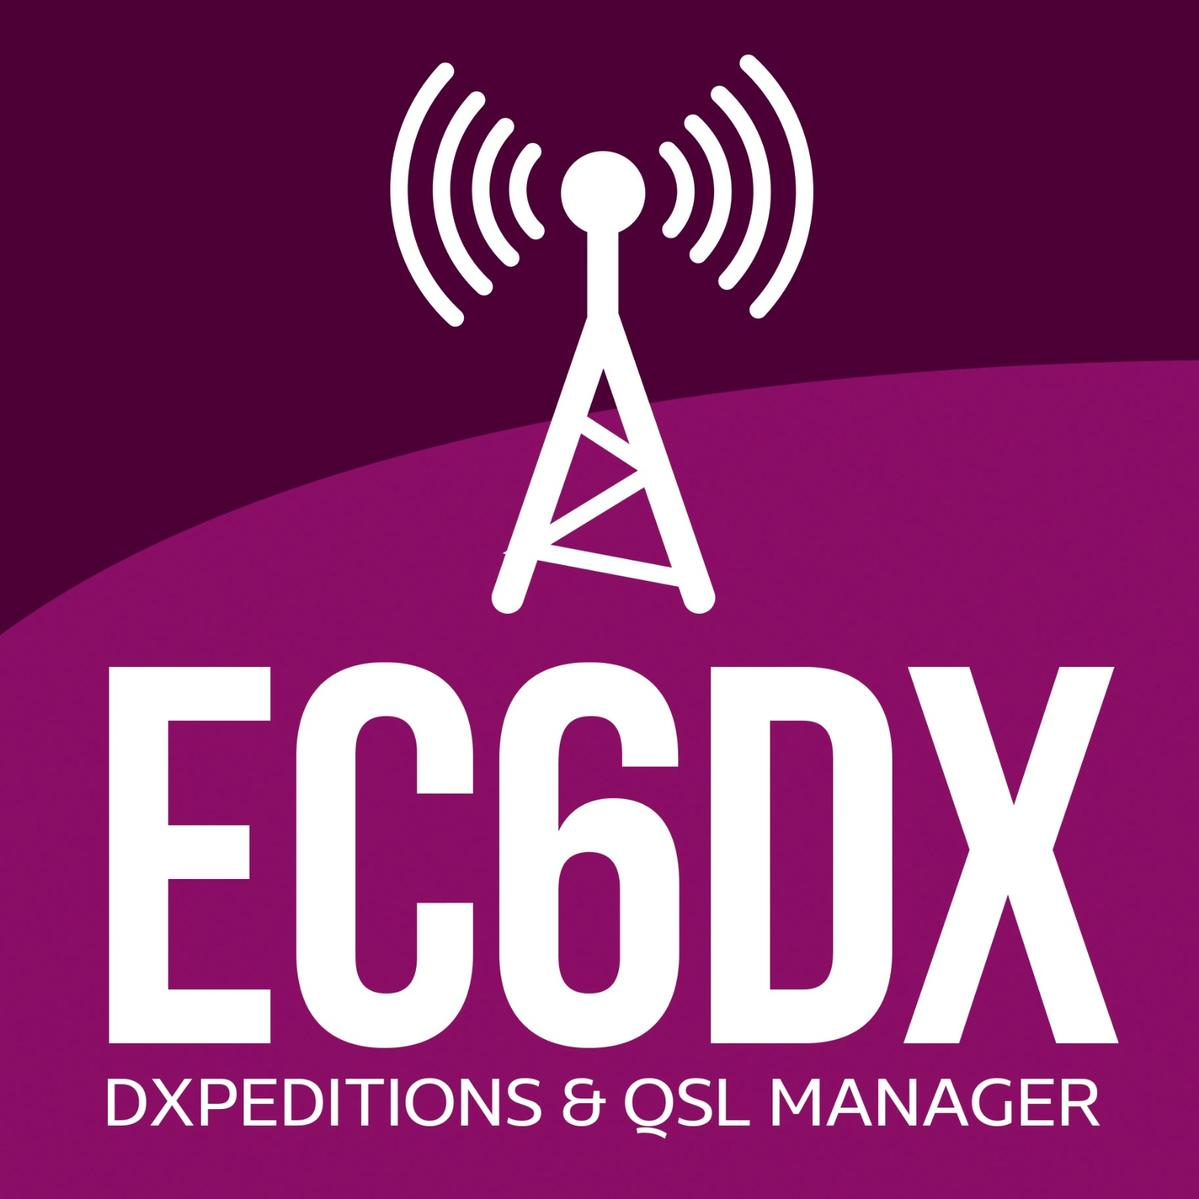 Primary Image for EC6DX